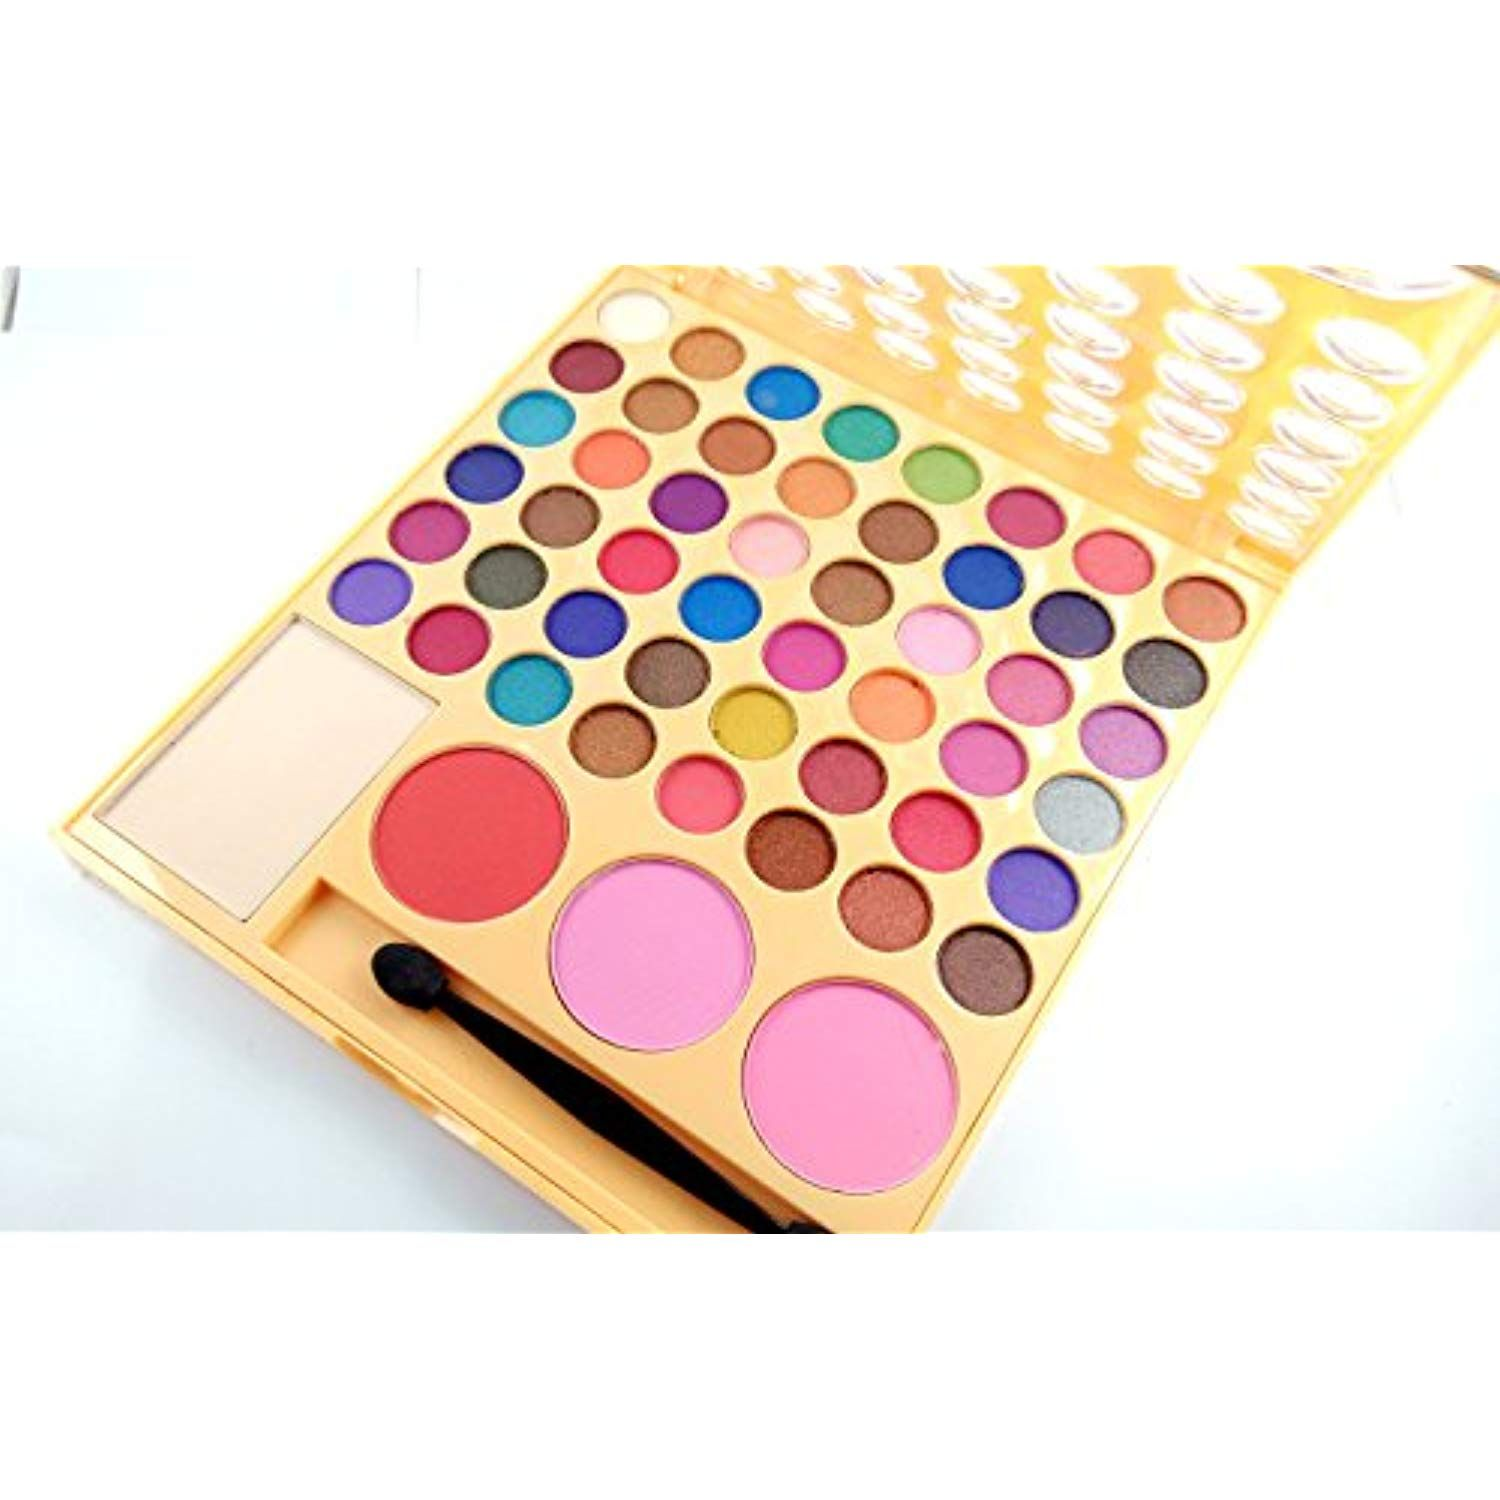 LAKME 9 TO 5 MAKEUP KIT COLORFULL DAZZLING SHINE 48 COLORS OF EYESHADOW,3 COLOR